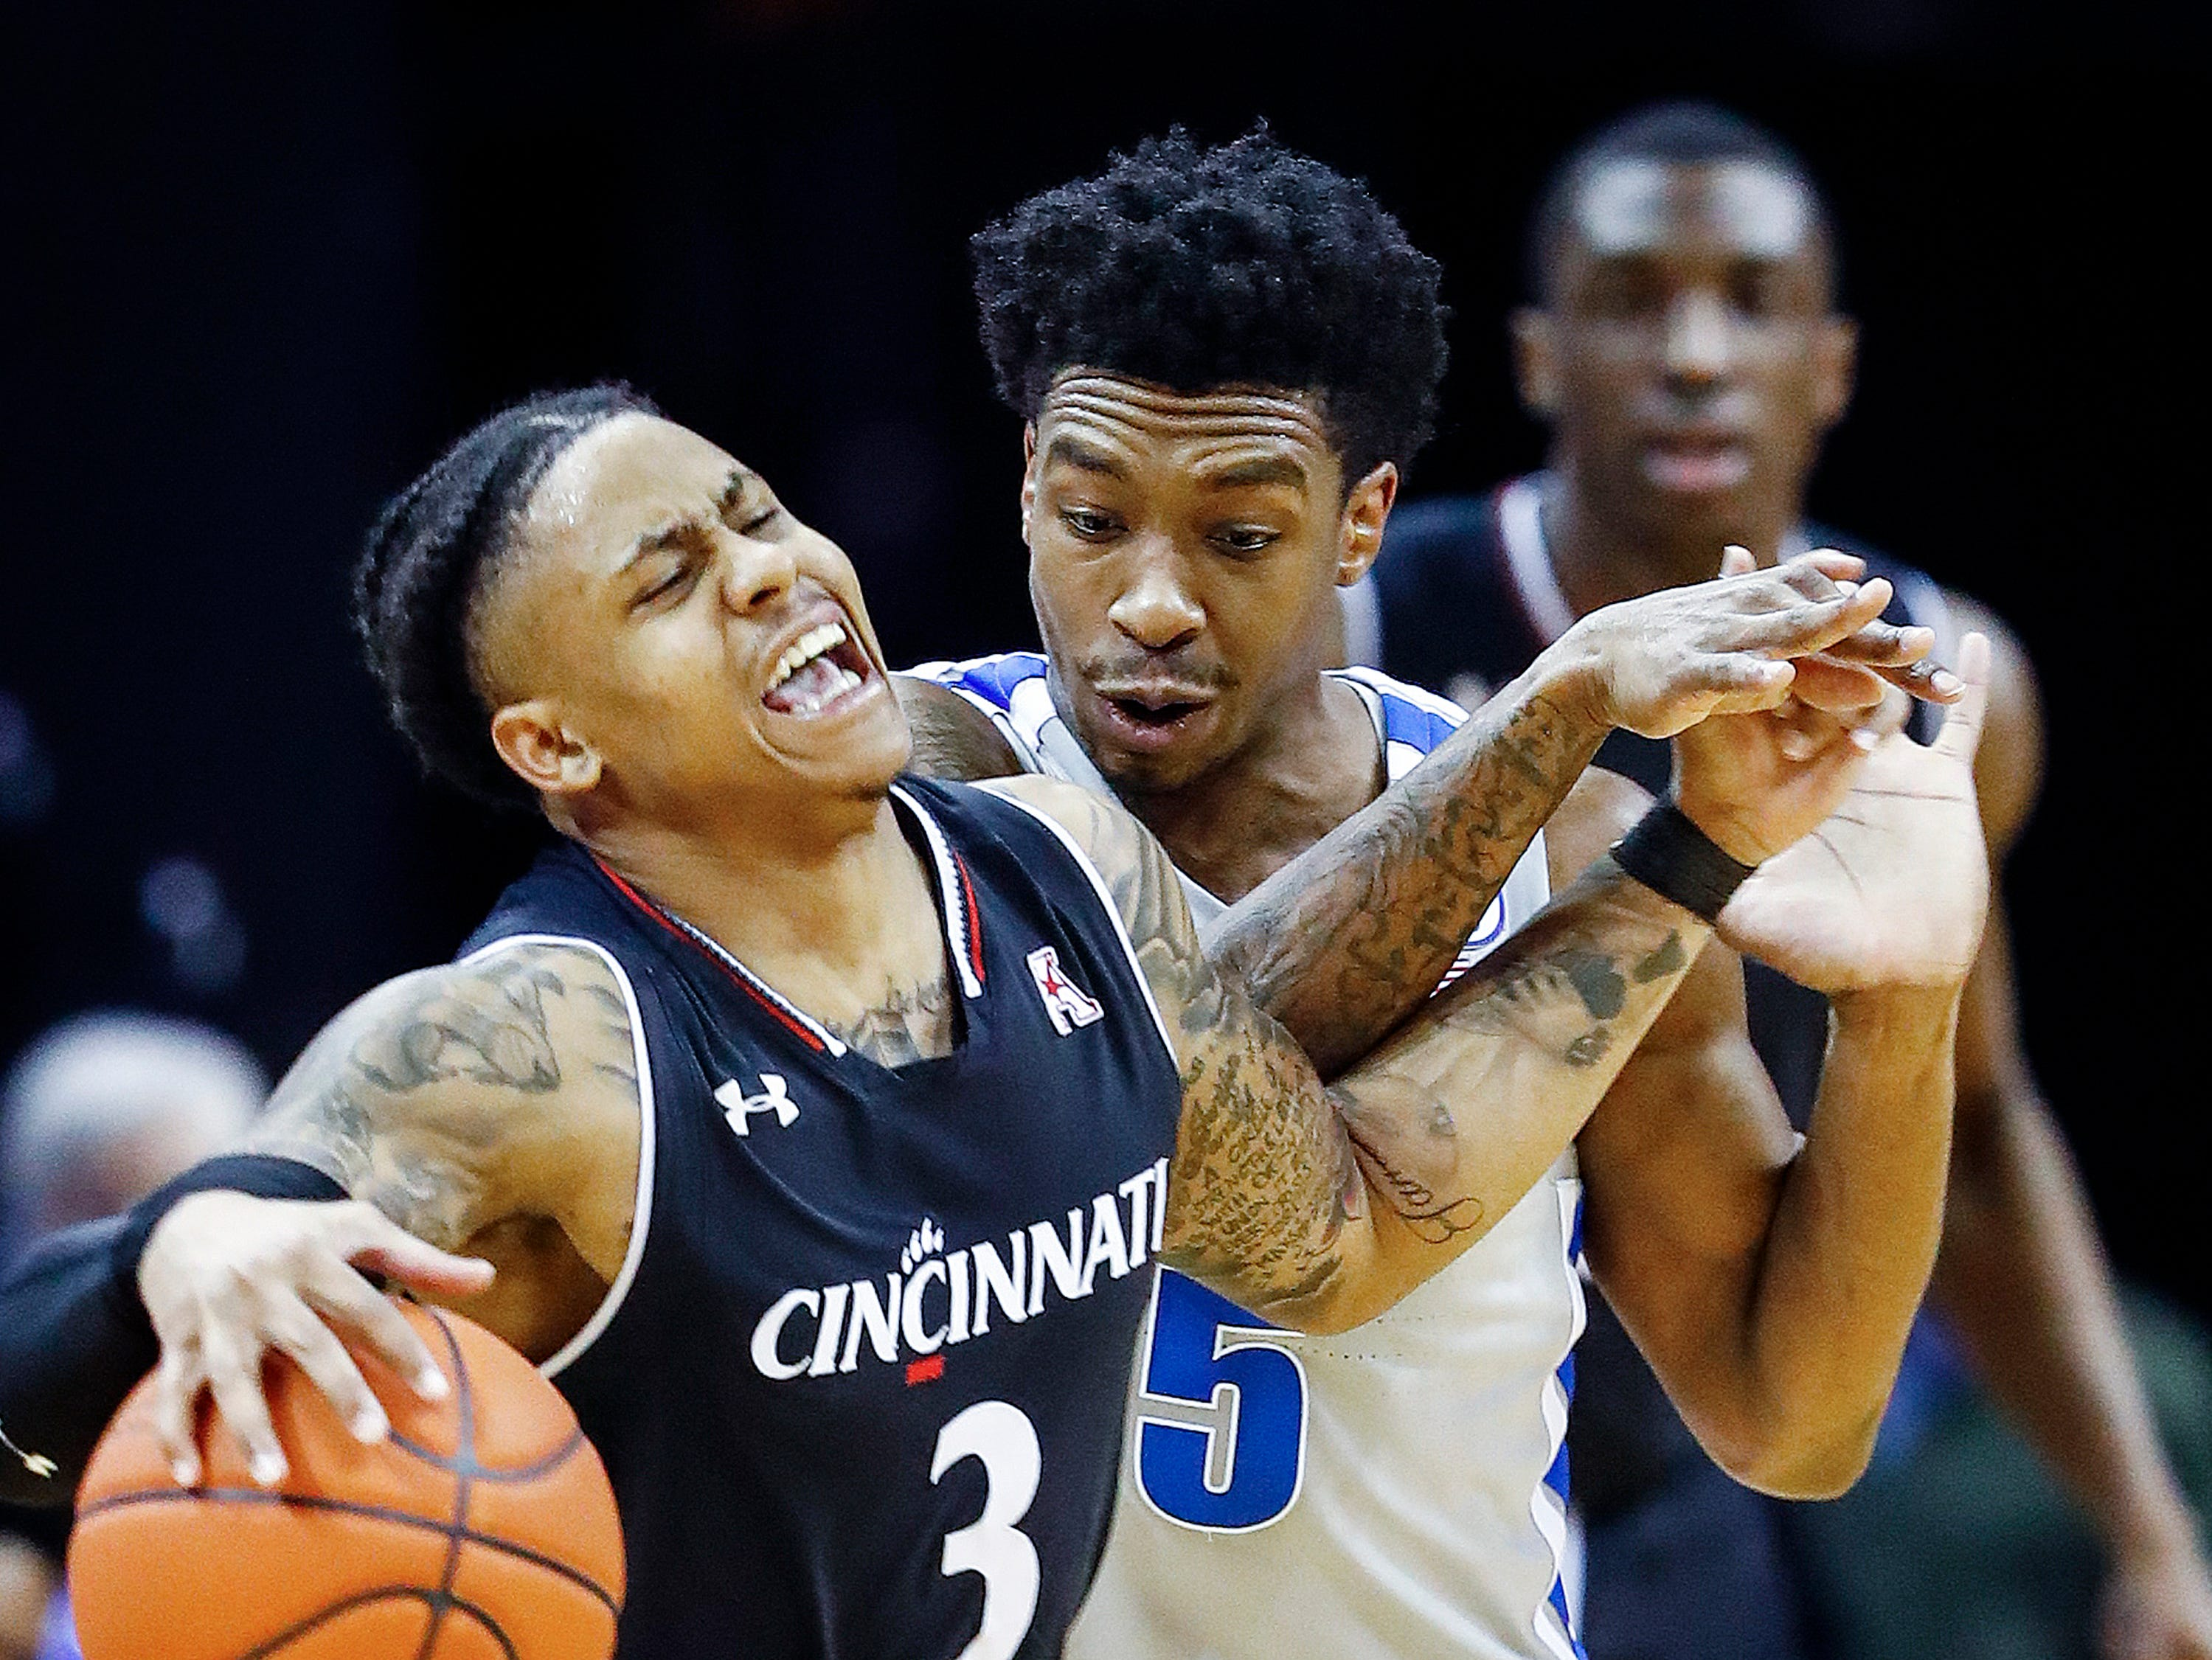 Memphis defender Kareem Brewton Jr. (right) guards Cincinnati guard Justin Jenifer (left) during action at the FedExForum, Thursday, February 7, 2019.